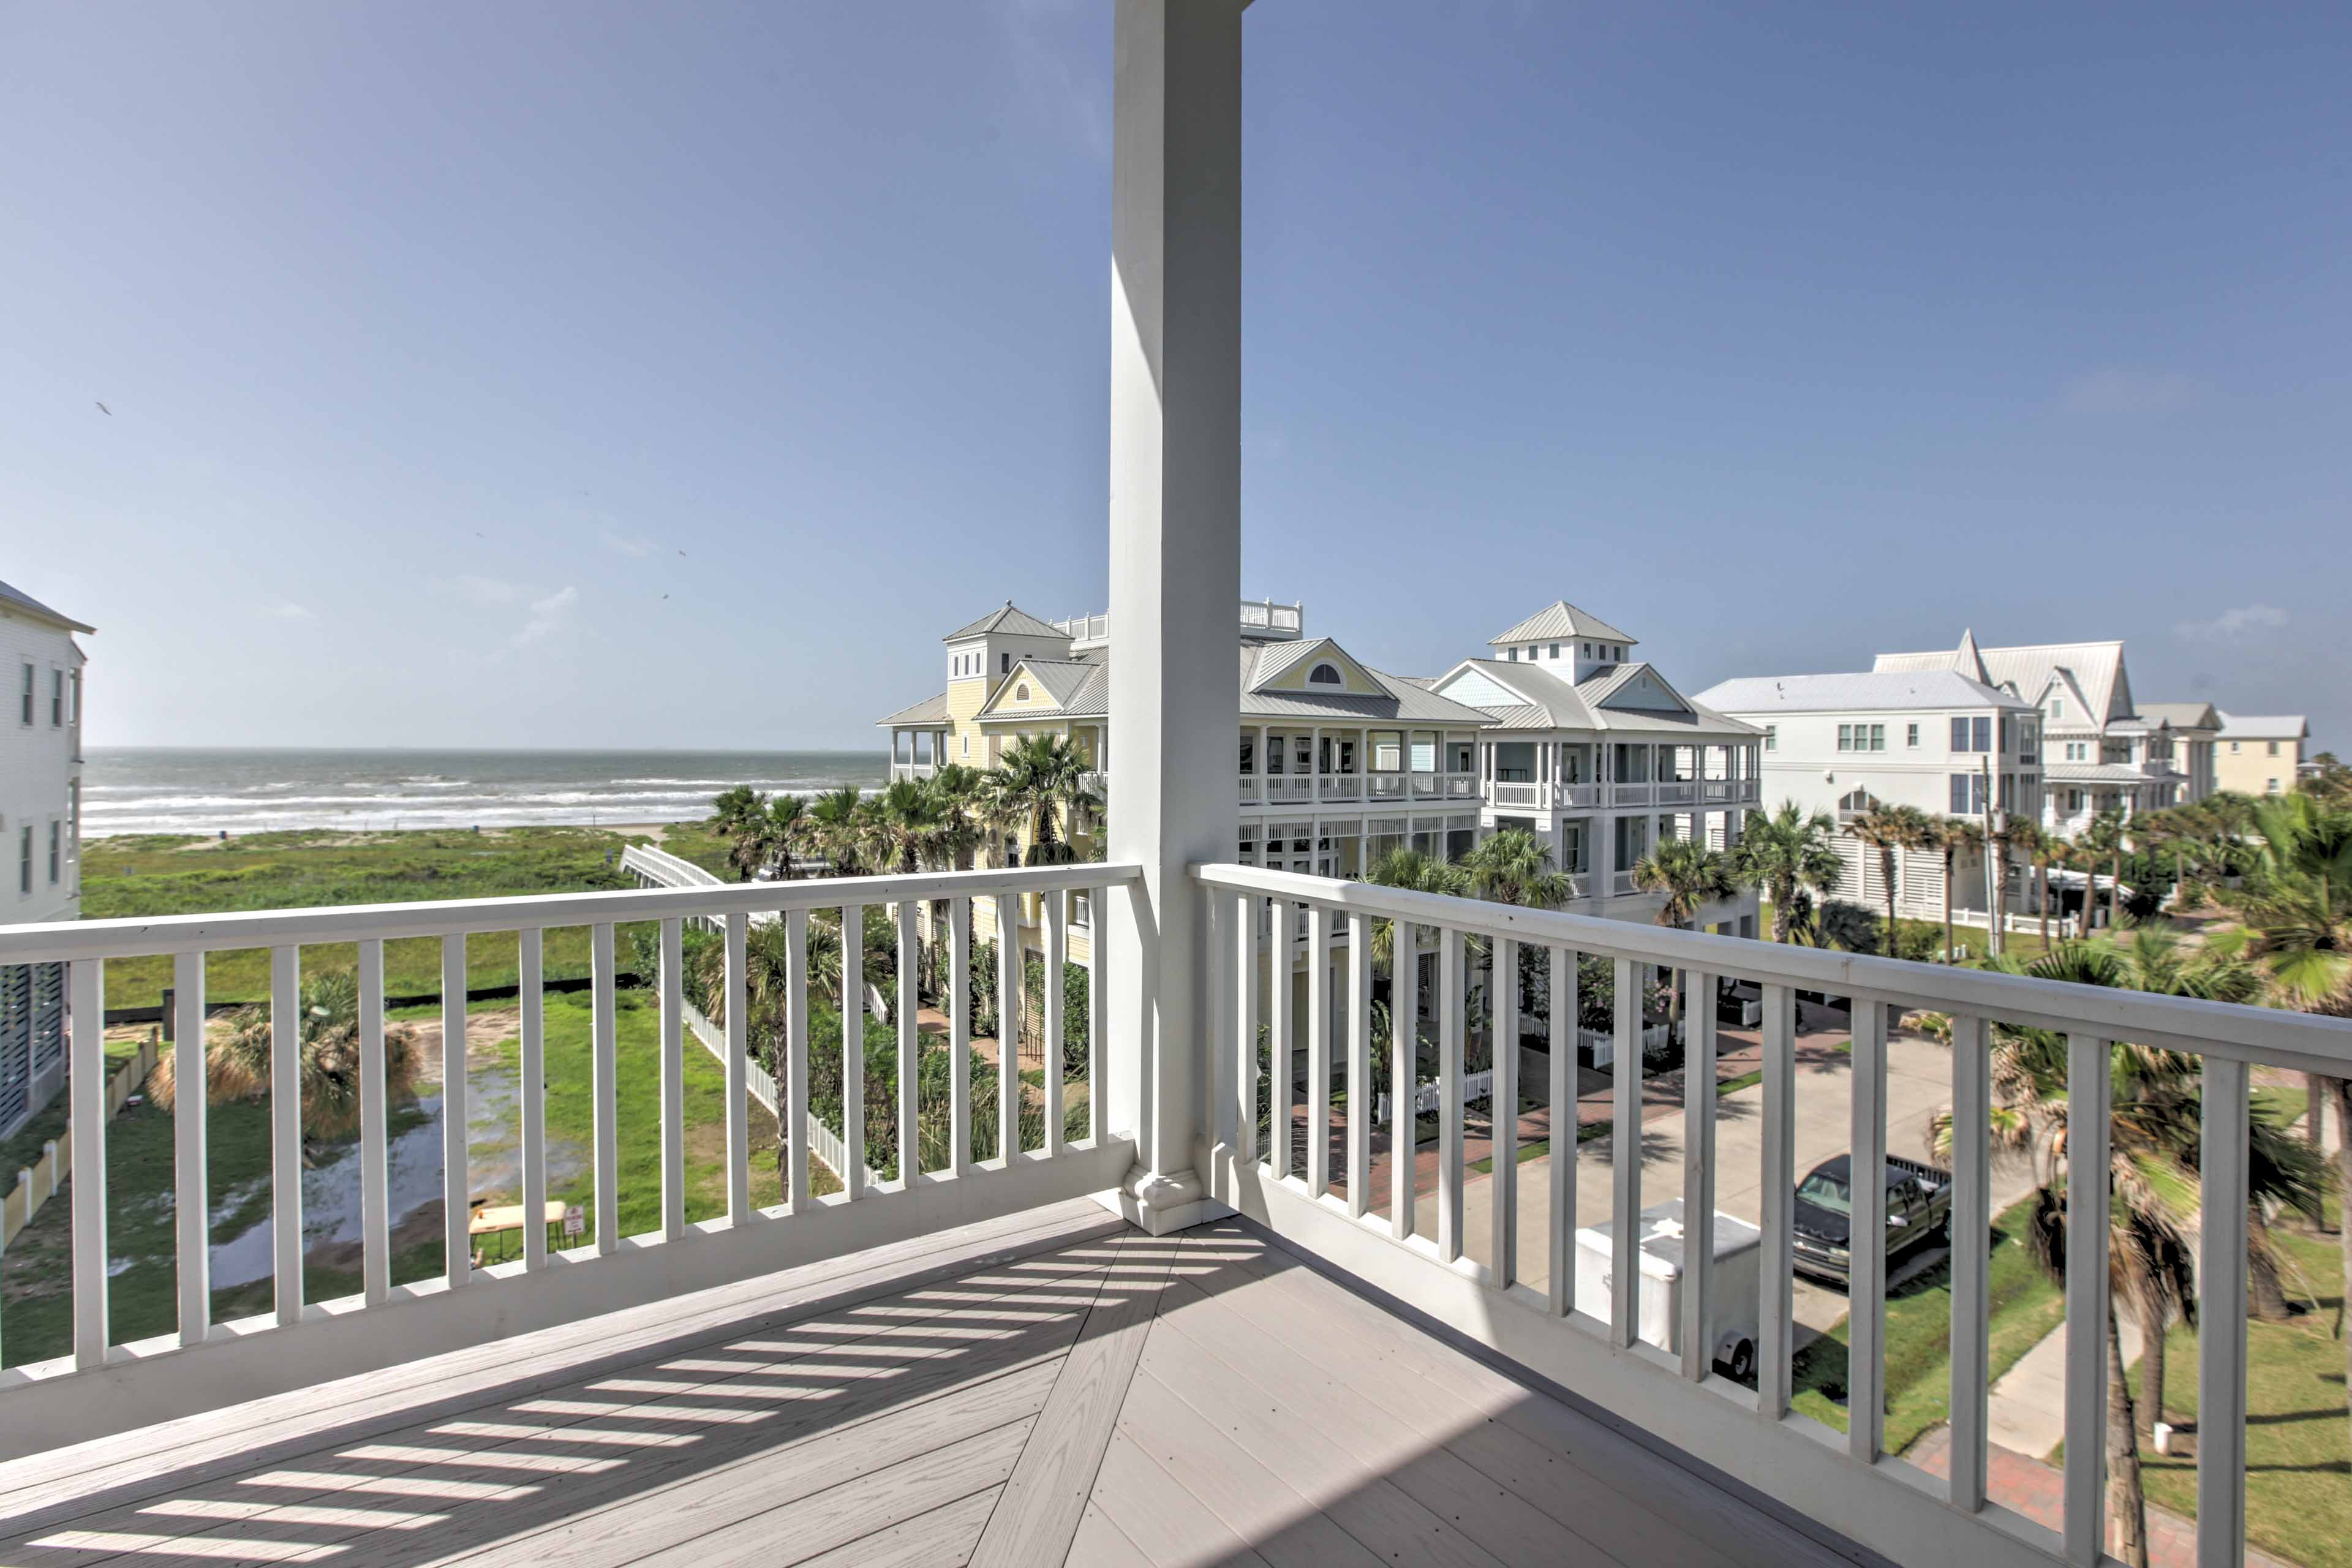 Enjoy views of the Gulf of Mexico and Bay of Galveston from both of the balconies in this 3-bedroom, 2.5-bathroom vacation rental home in Galveston!